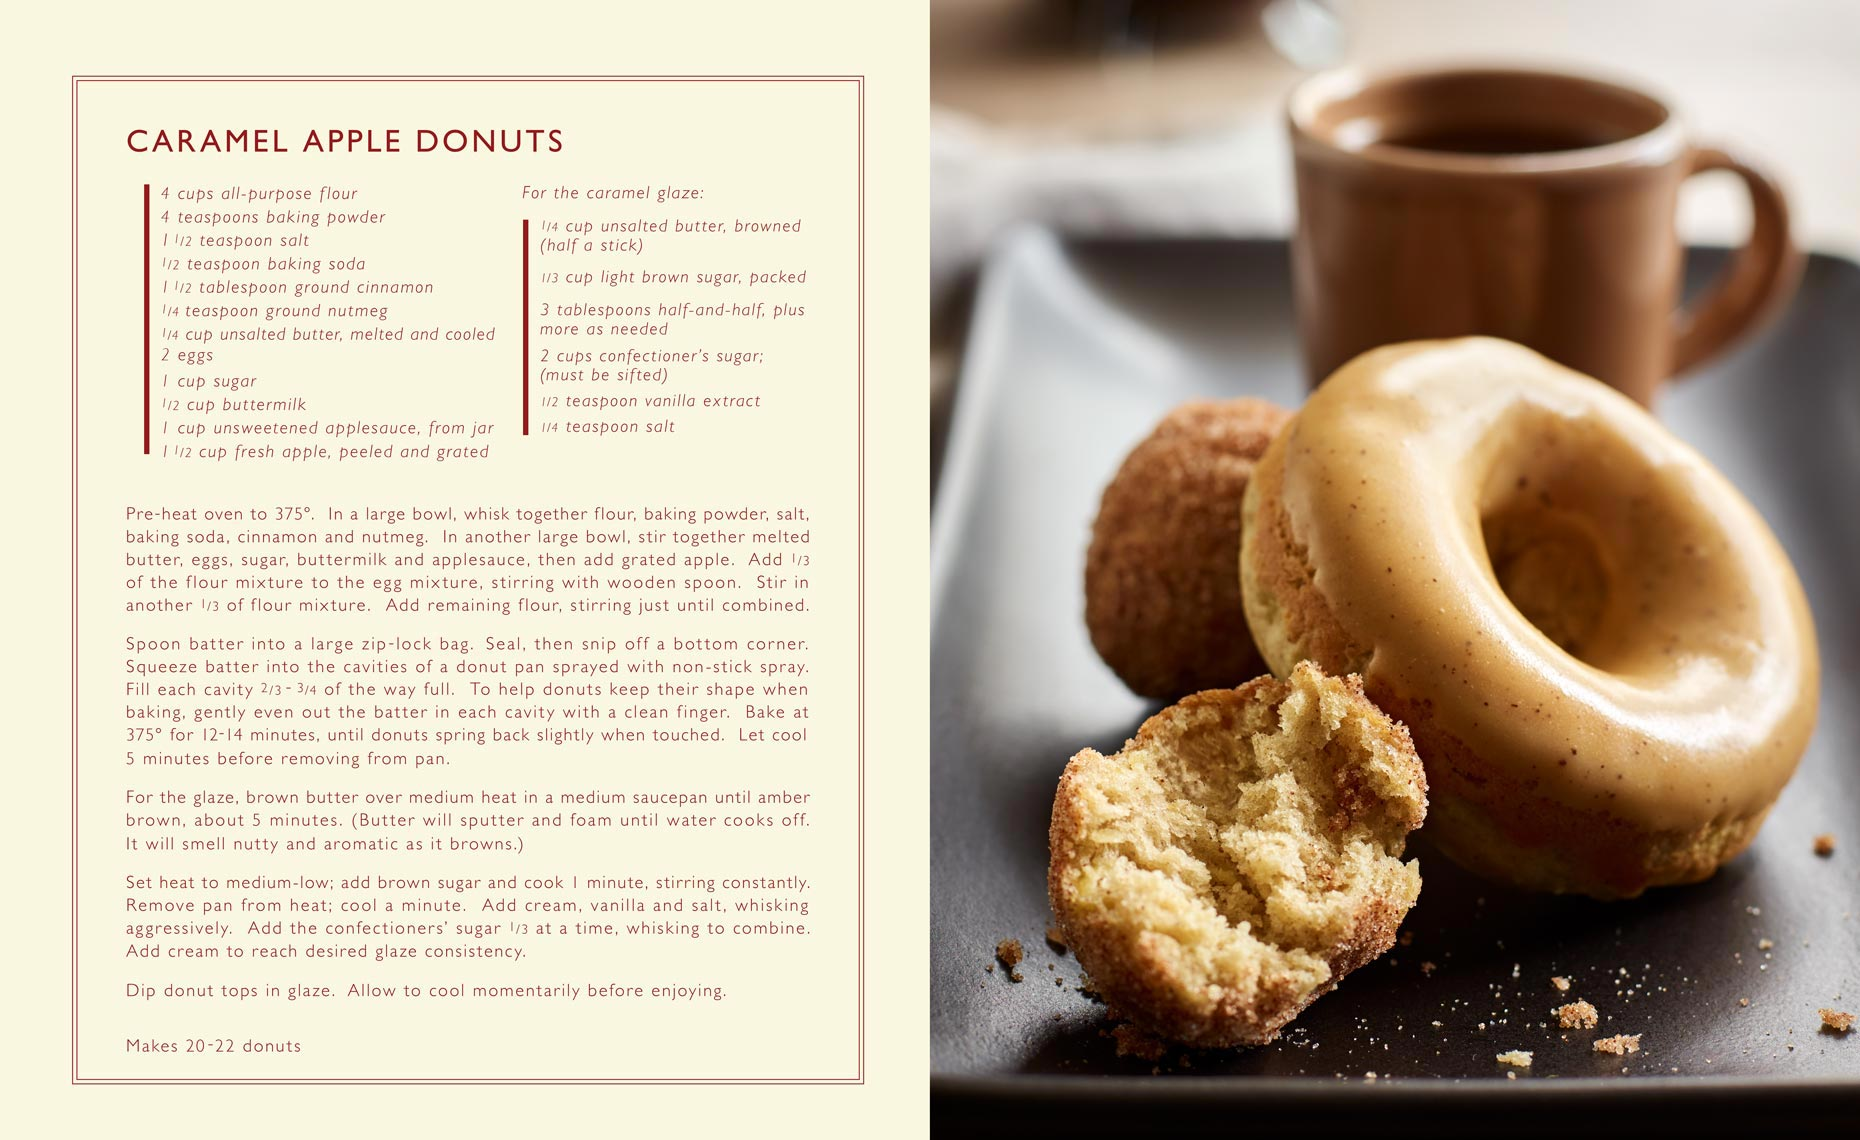 CaramelAppleDonut_Recipe